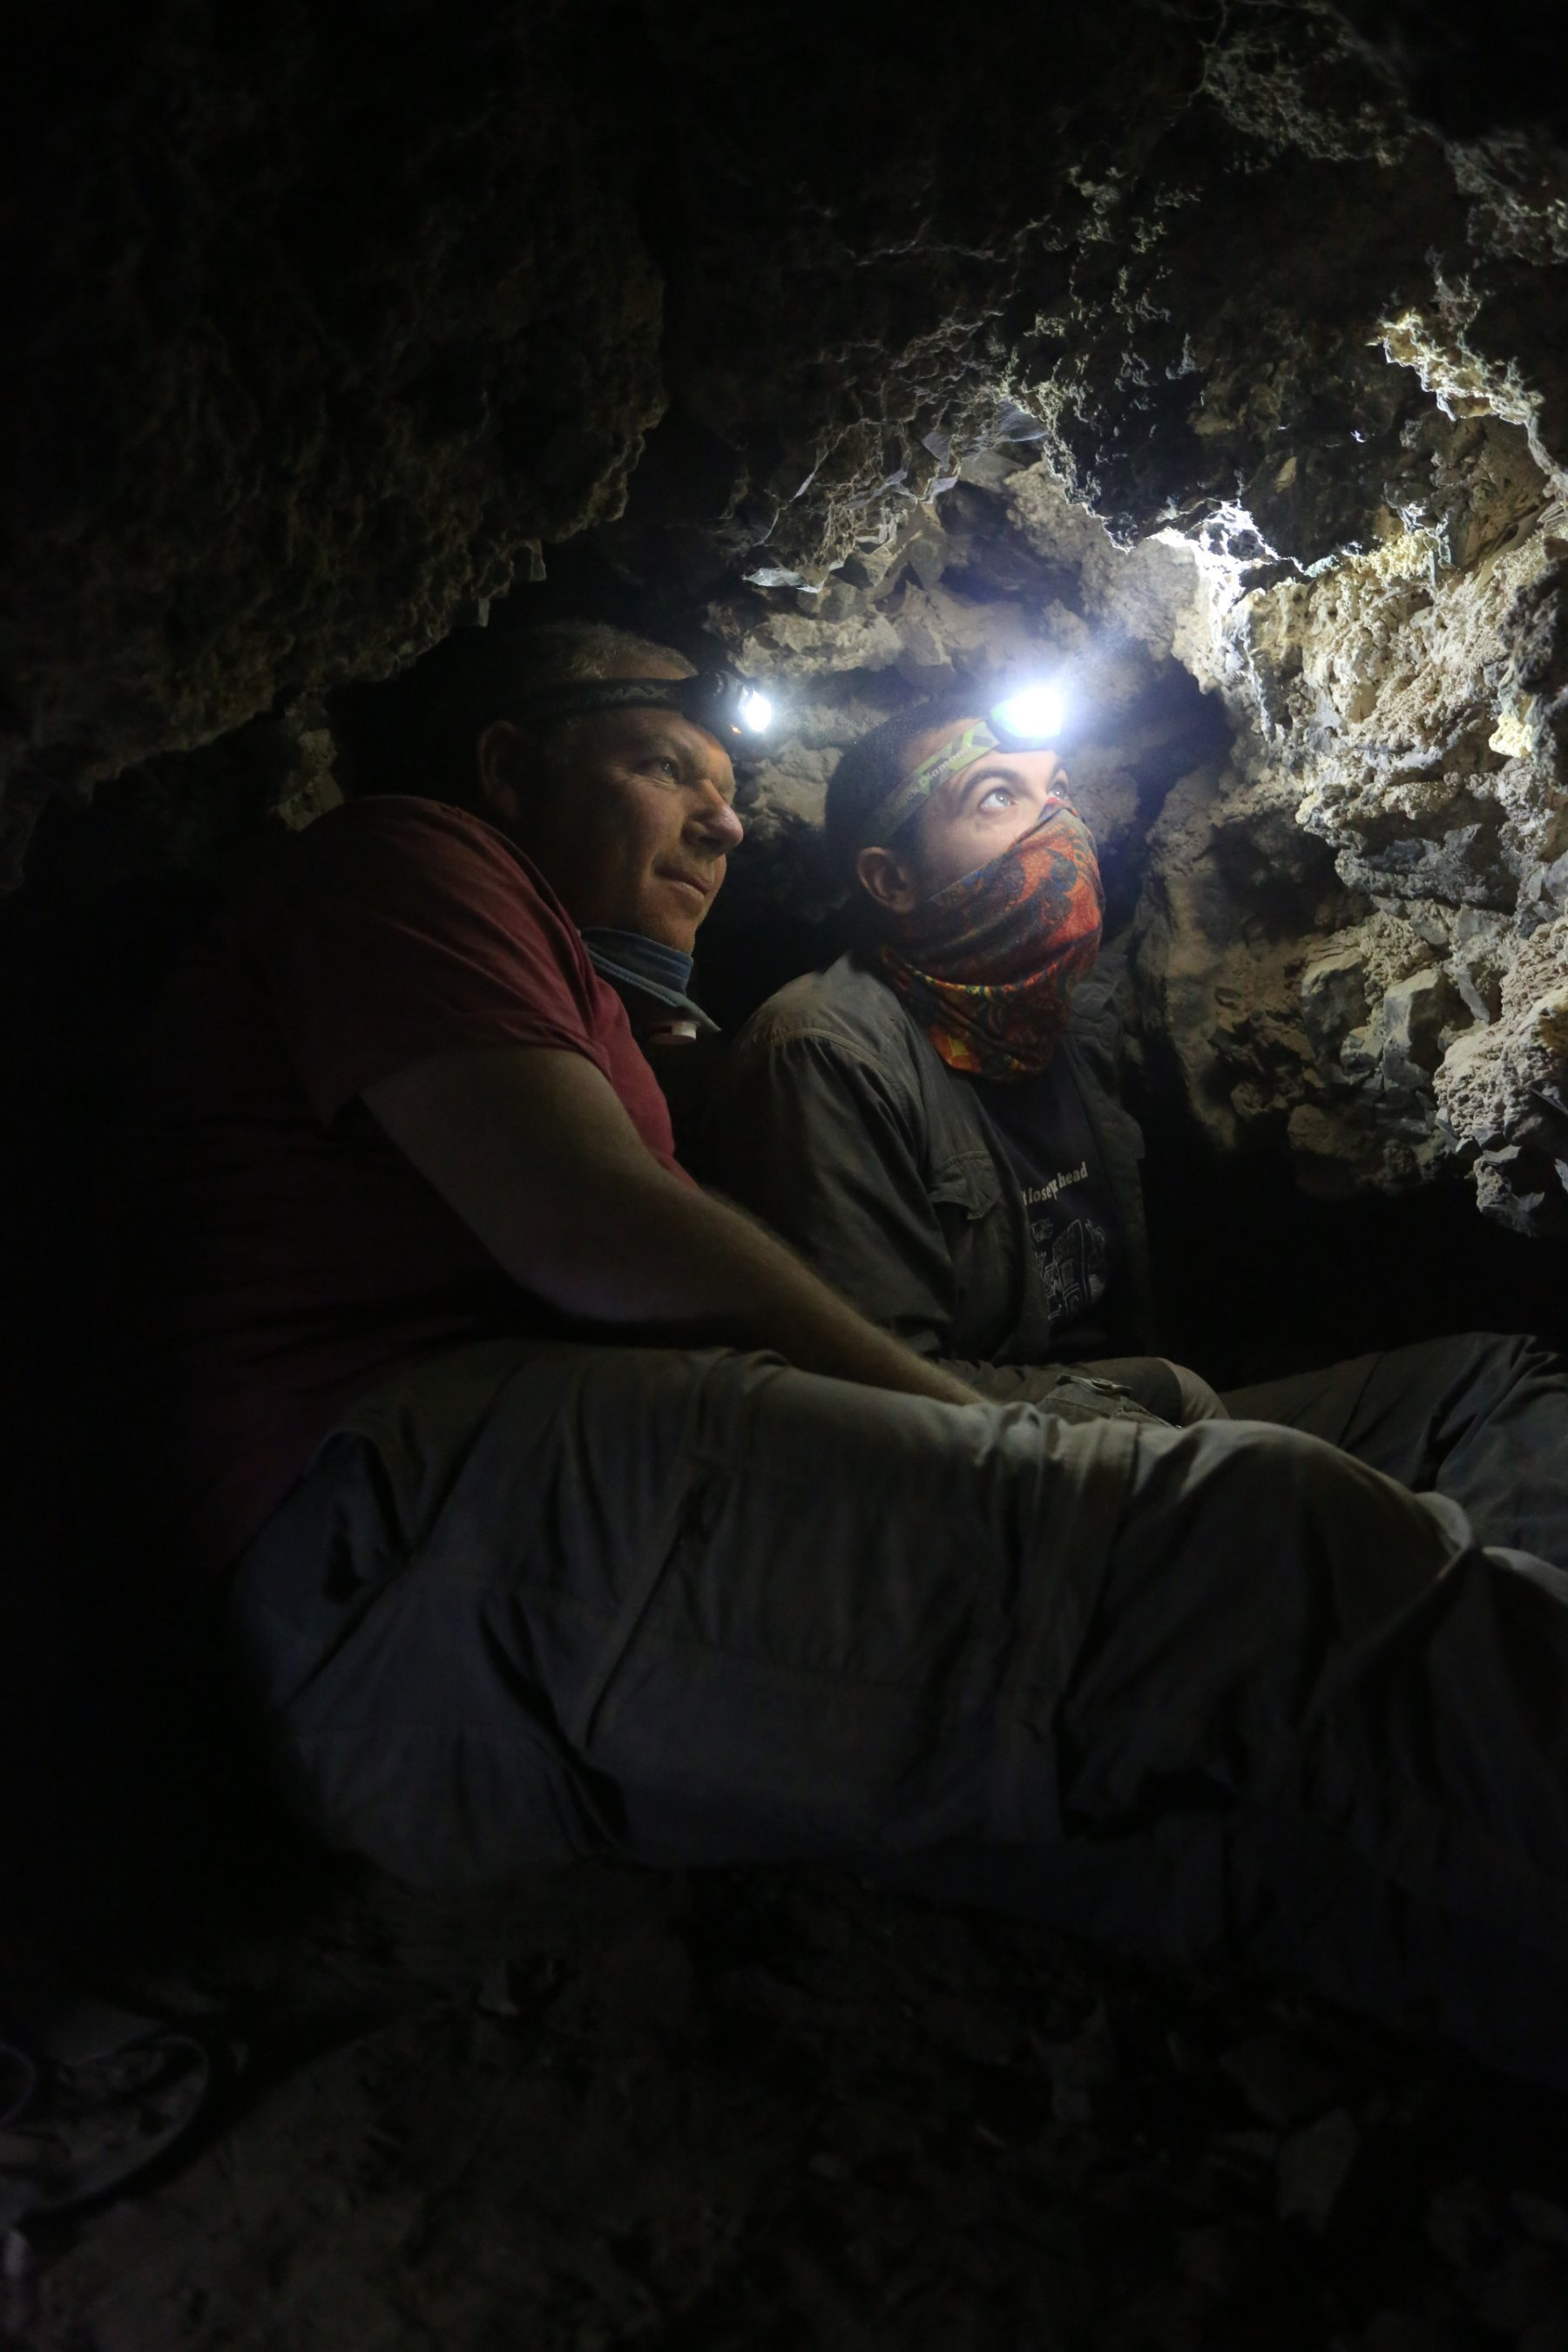 Excavations on the storied Judean cliffside revealed a new Dead Sea Scrolls cave, full of scroll storage jars and other antiquities, the first such discovery in over 60 years. The discovery upends a decades-old theory in the archaeological community that Dead Sea Scrolls were only found in certain caves at the Qumran cliffs, which are managed by Israel in the West Bank.Credit: Casey L. Olson and Dr. Oren Gutfeld